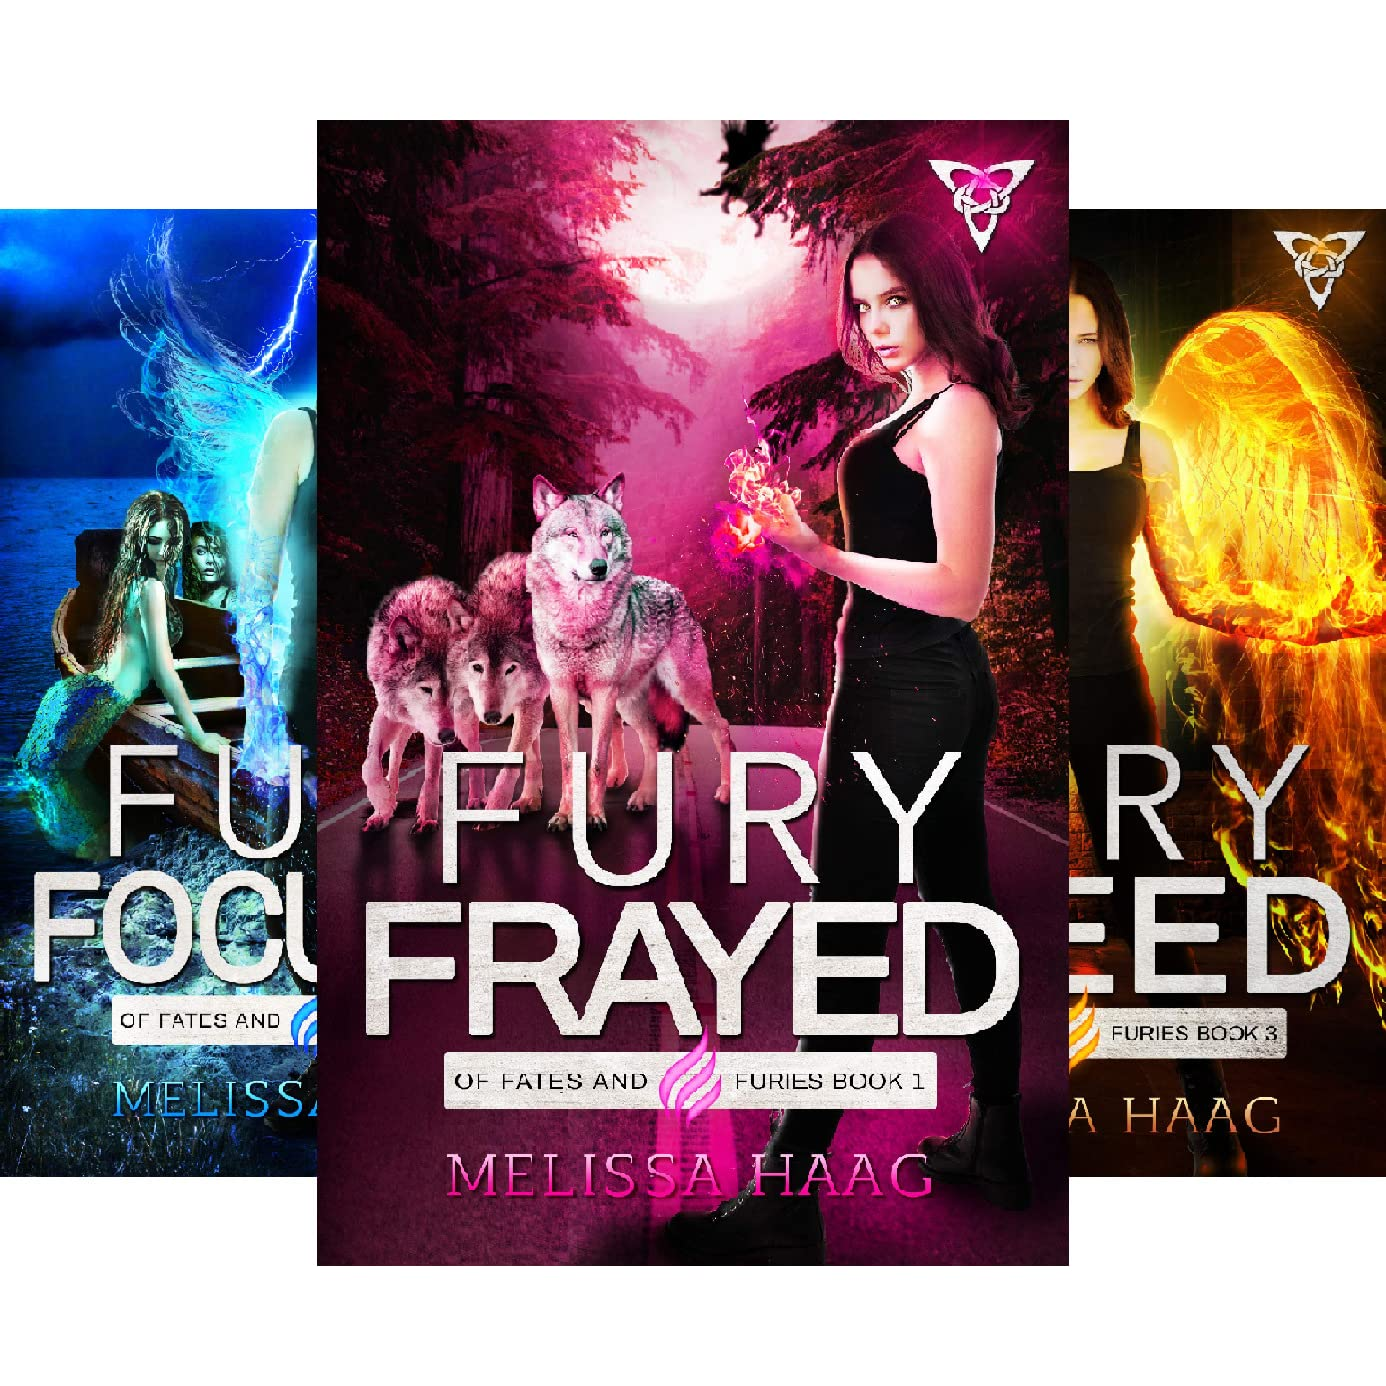 Of Fates And Furies 3 Book Series By Melissa Haag